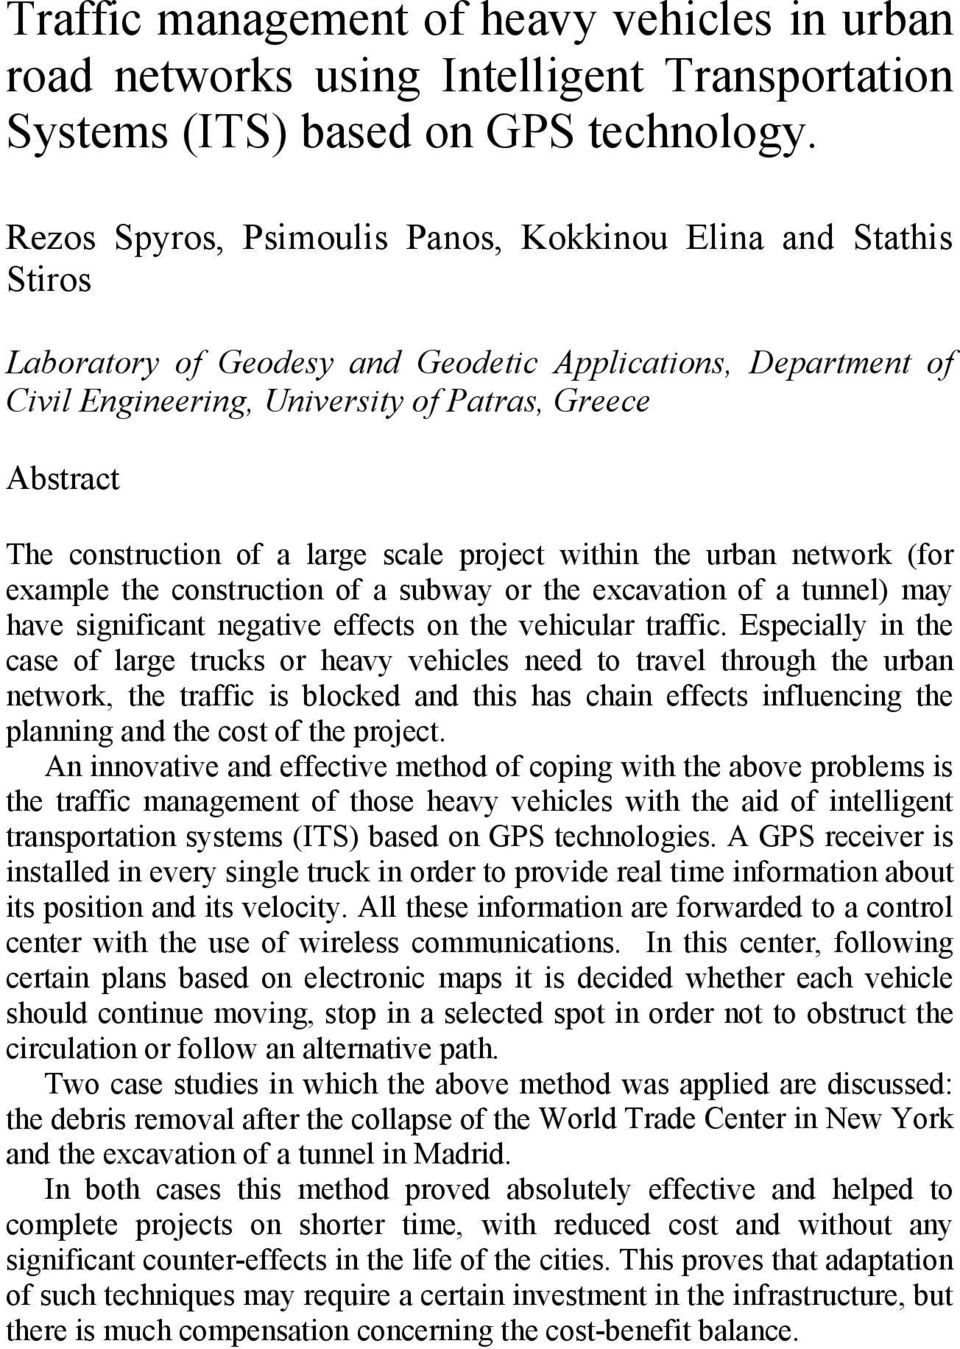 construction of a large scale project within the urban network (for example the construction of a subway or the excavation of a tunnel) may have significant negative effects on the vehicular traffic.